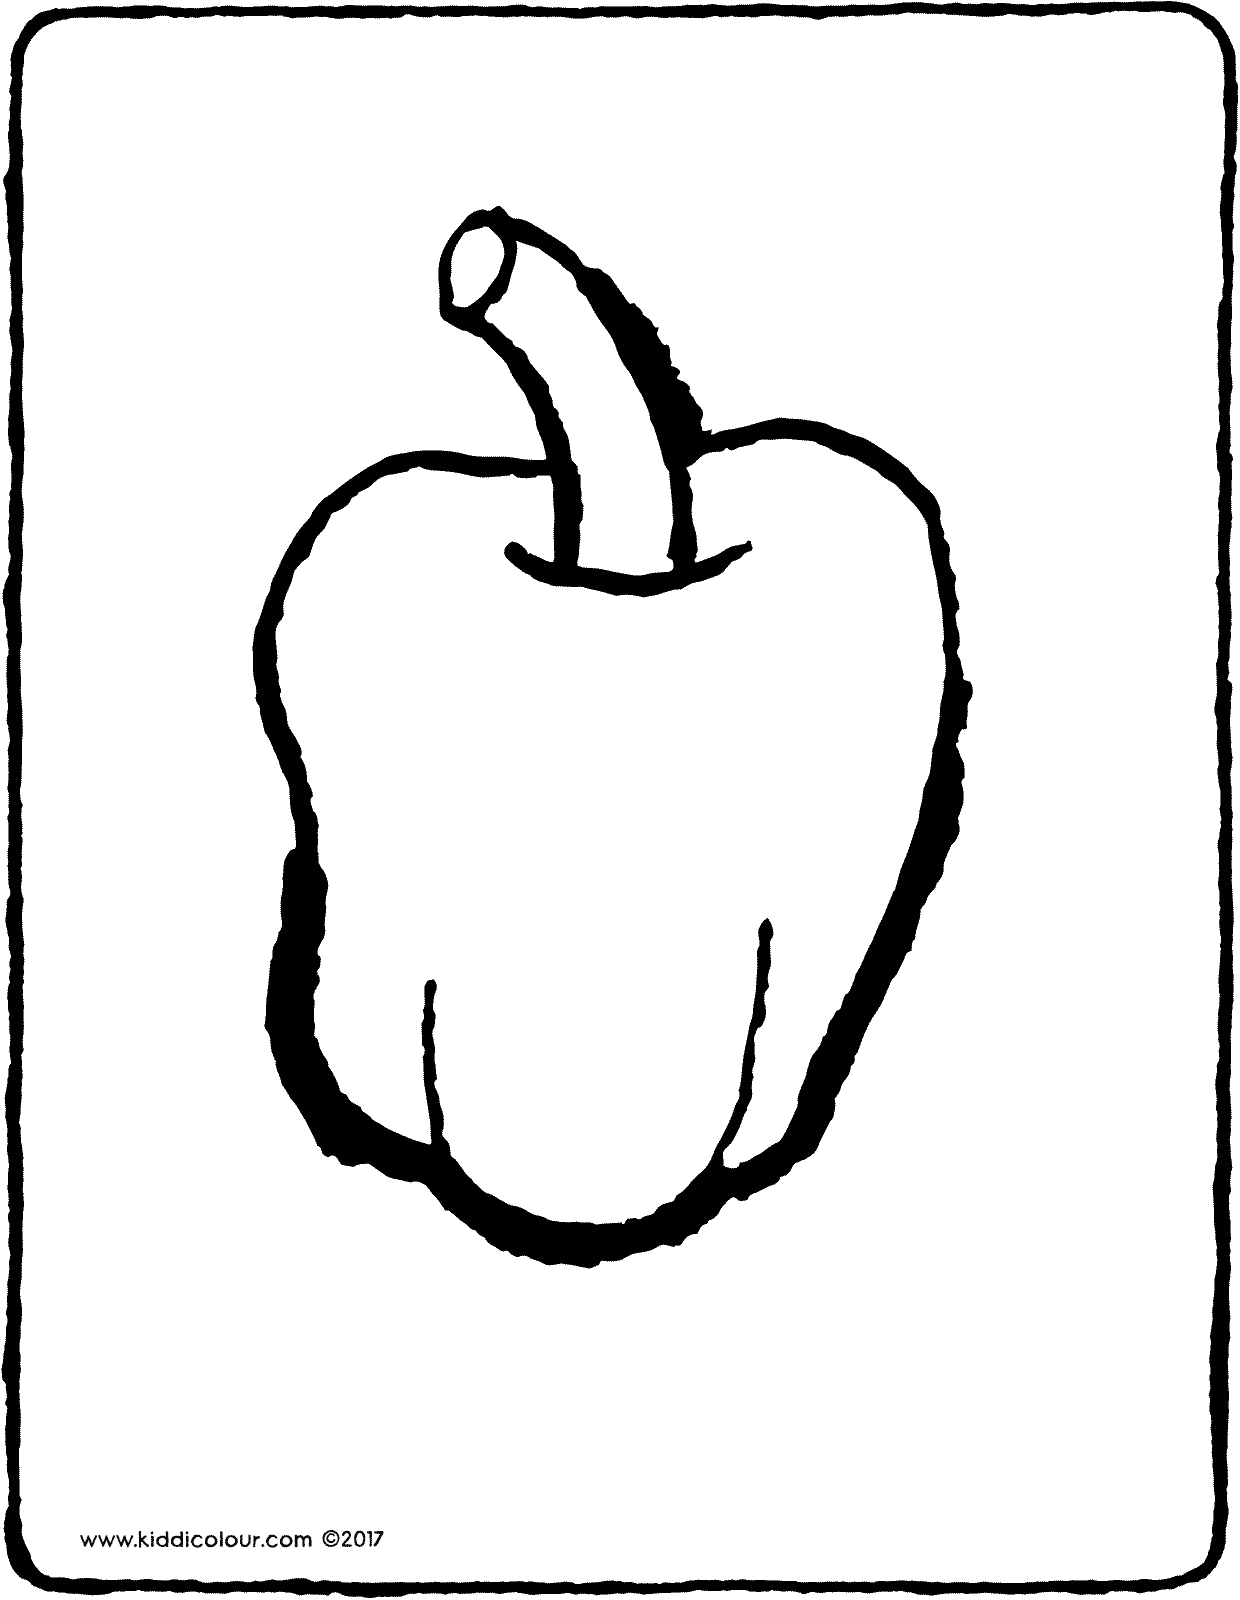 sweet pepper colouring page drawing picture 01V